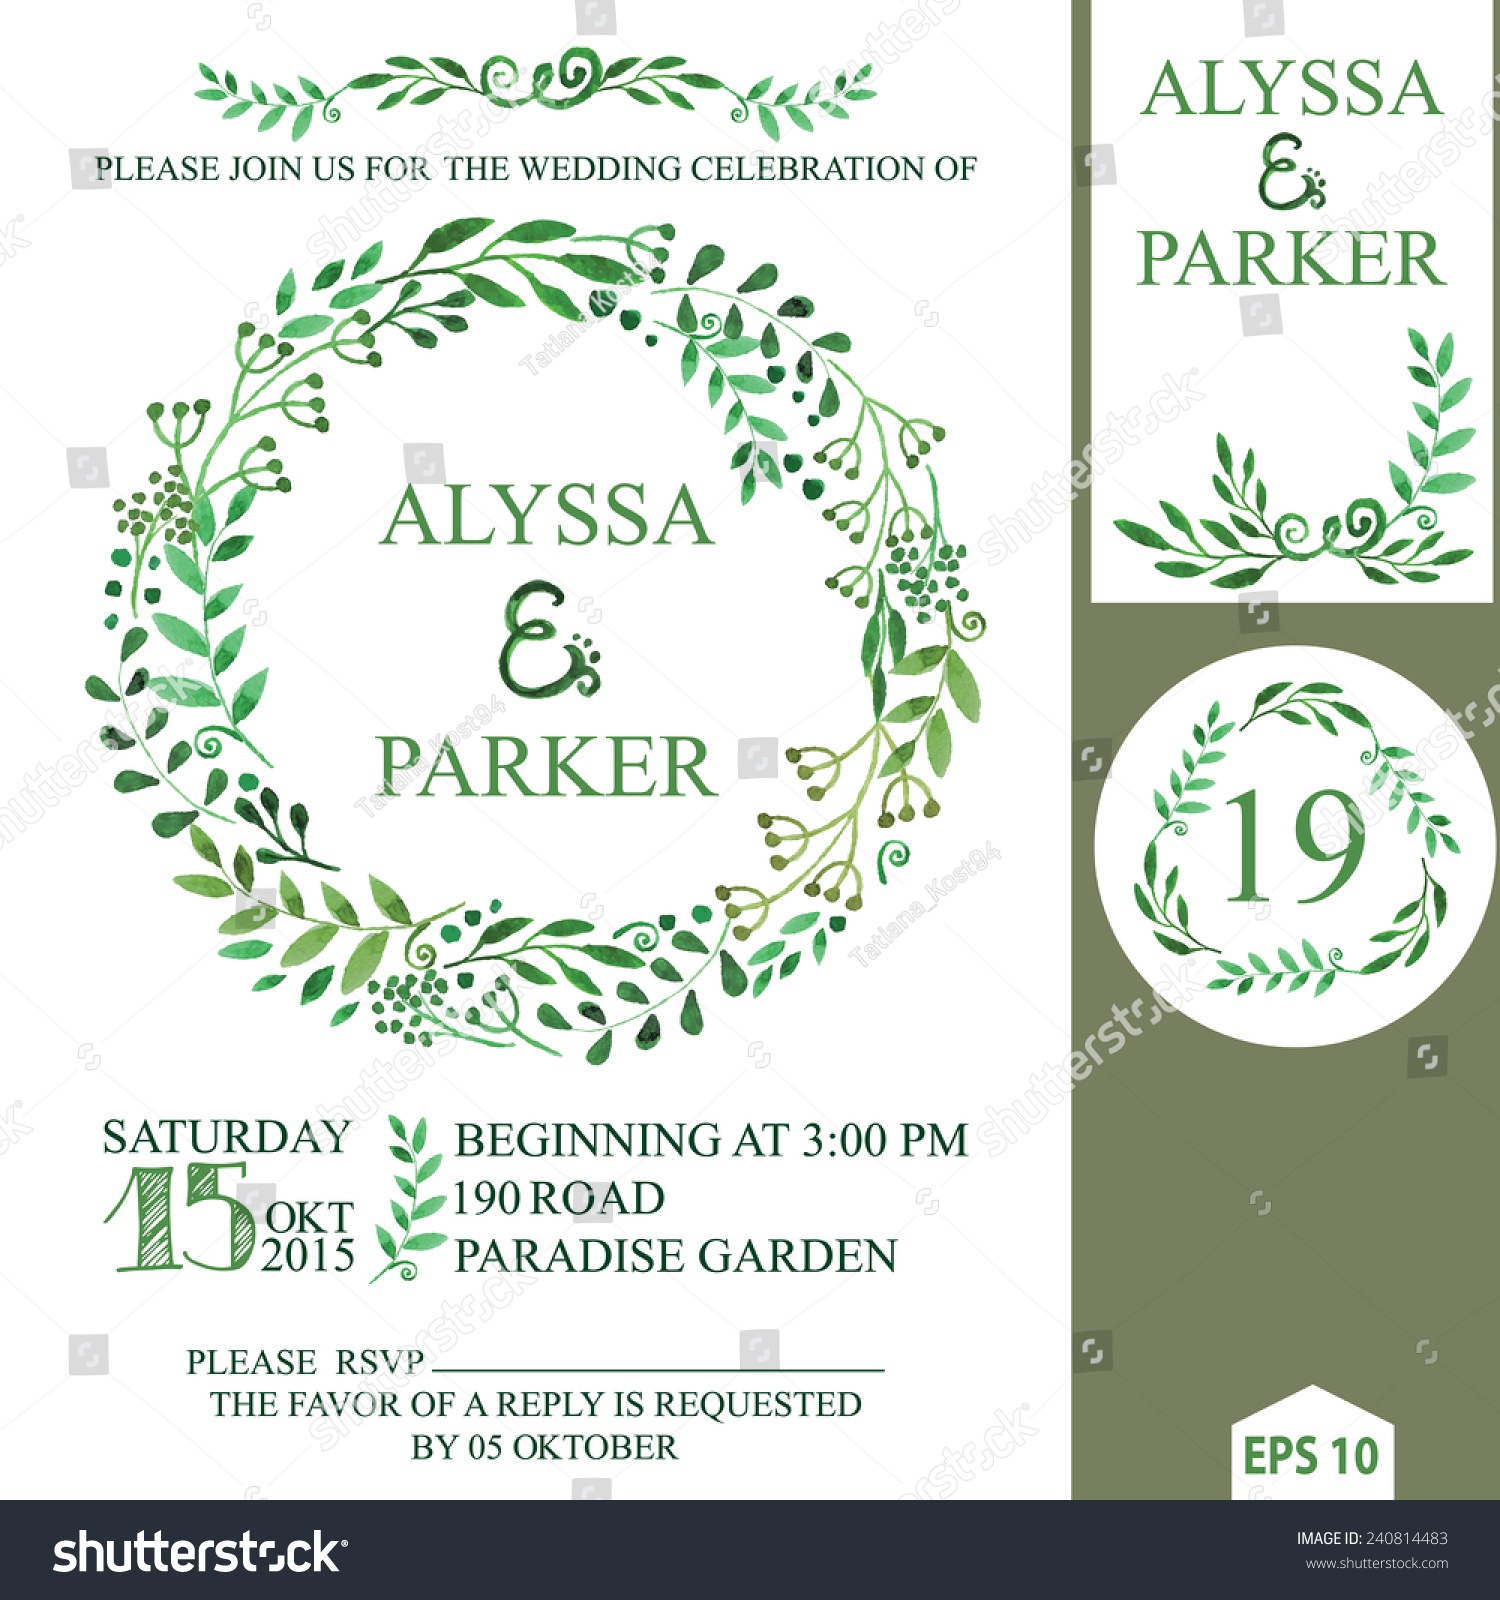 wedding invites wedding invitations design 20 best images about wedding invites on Pinterest Typography wedding invitations Fonts and Letterpress wedding invitations